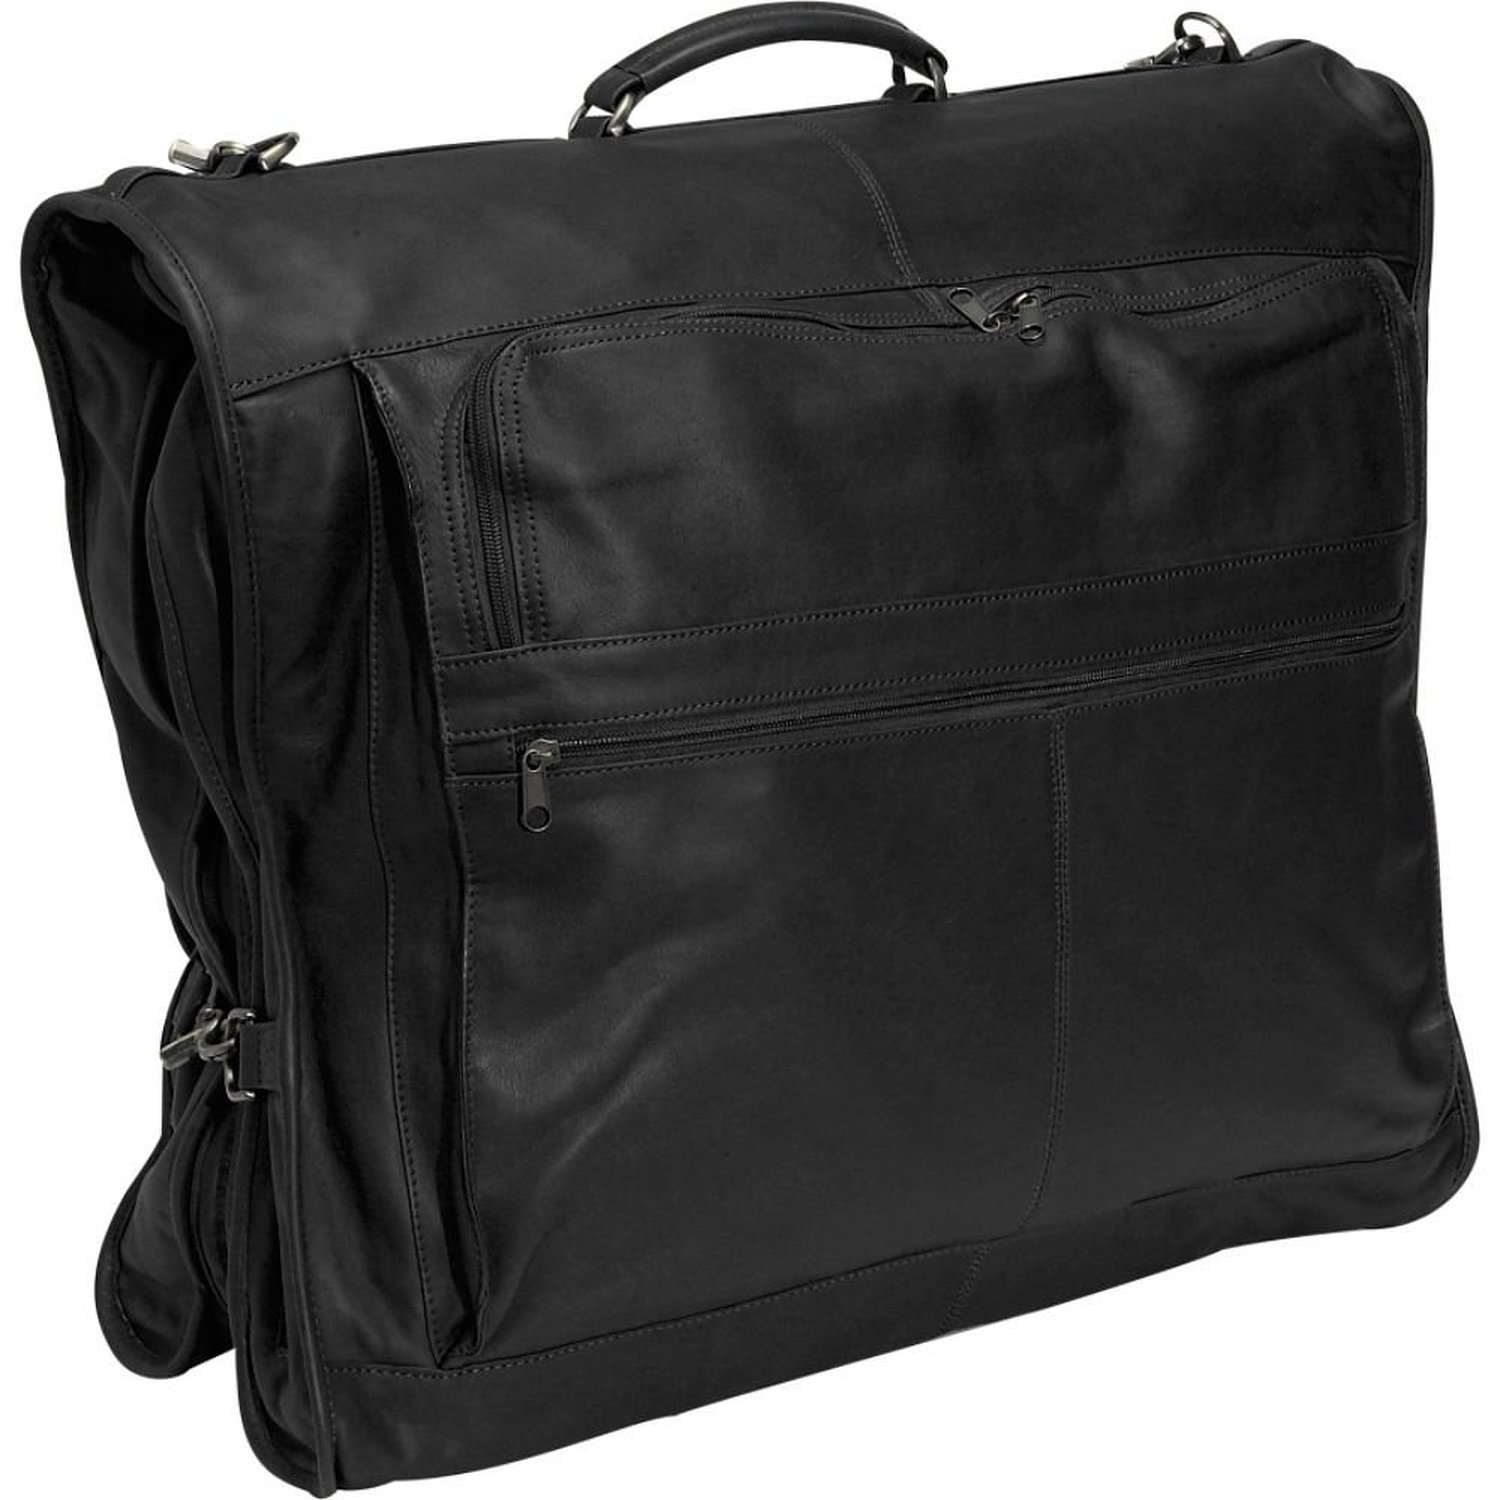 Royce Leather 'Fletcher' Carry-On All Leather Suiter (659-BLACK-3)